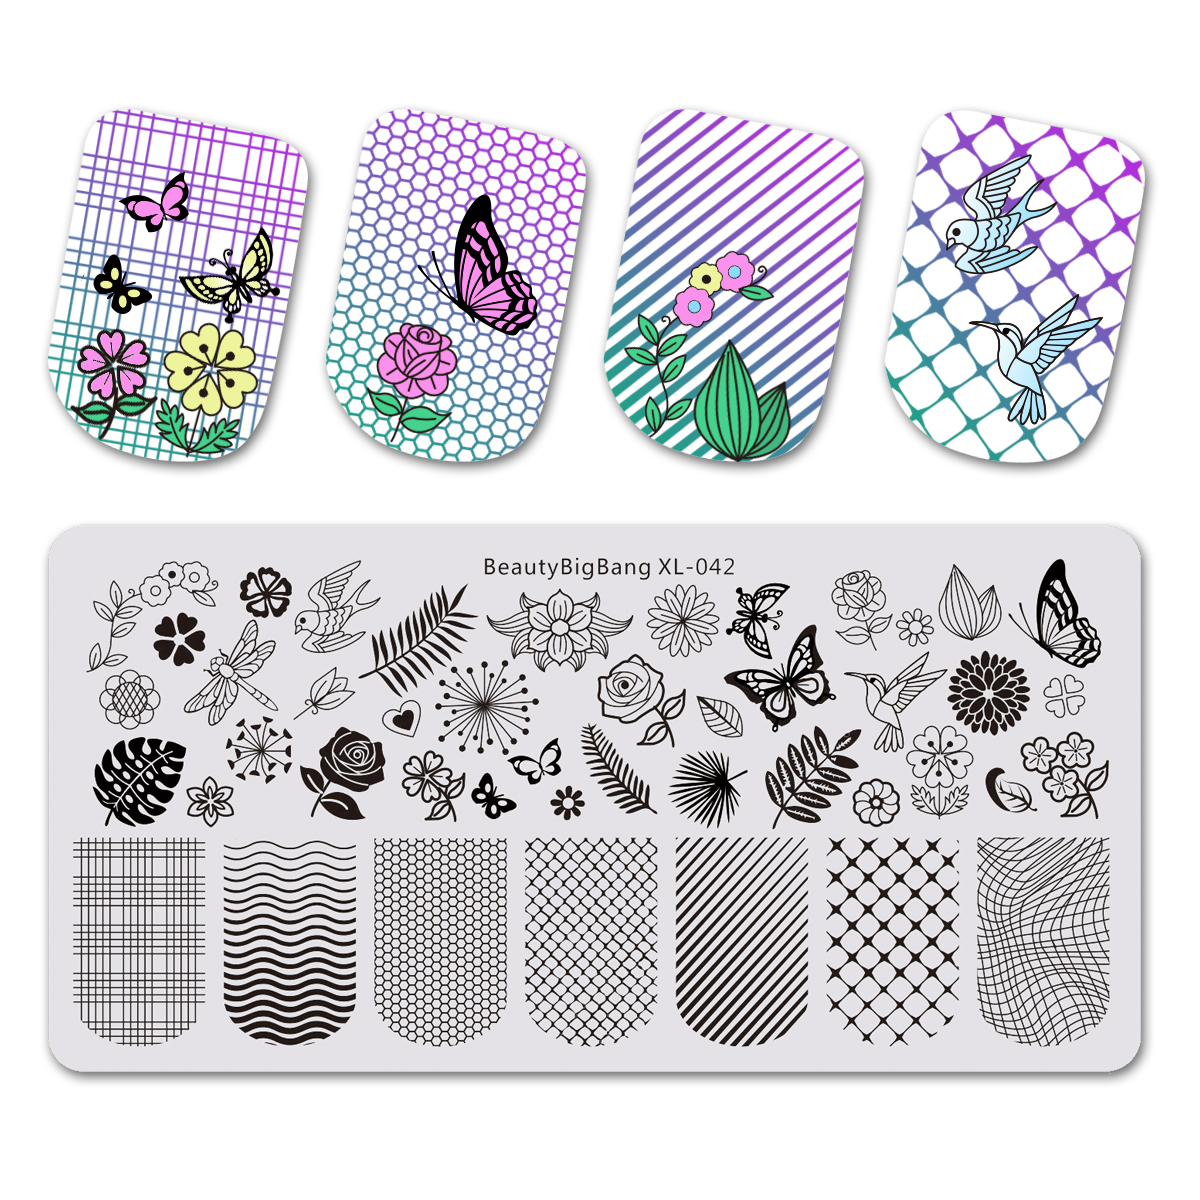 Beautybigbang 6*12cm Nail Stamping Plates Stainless Steel Rectangle Flower Butterfly Grid Plaid Bird Image Nail Art Stamp Plate